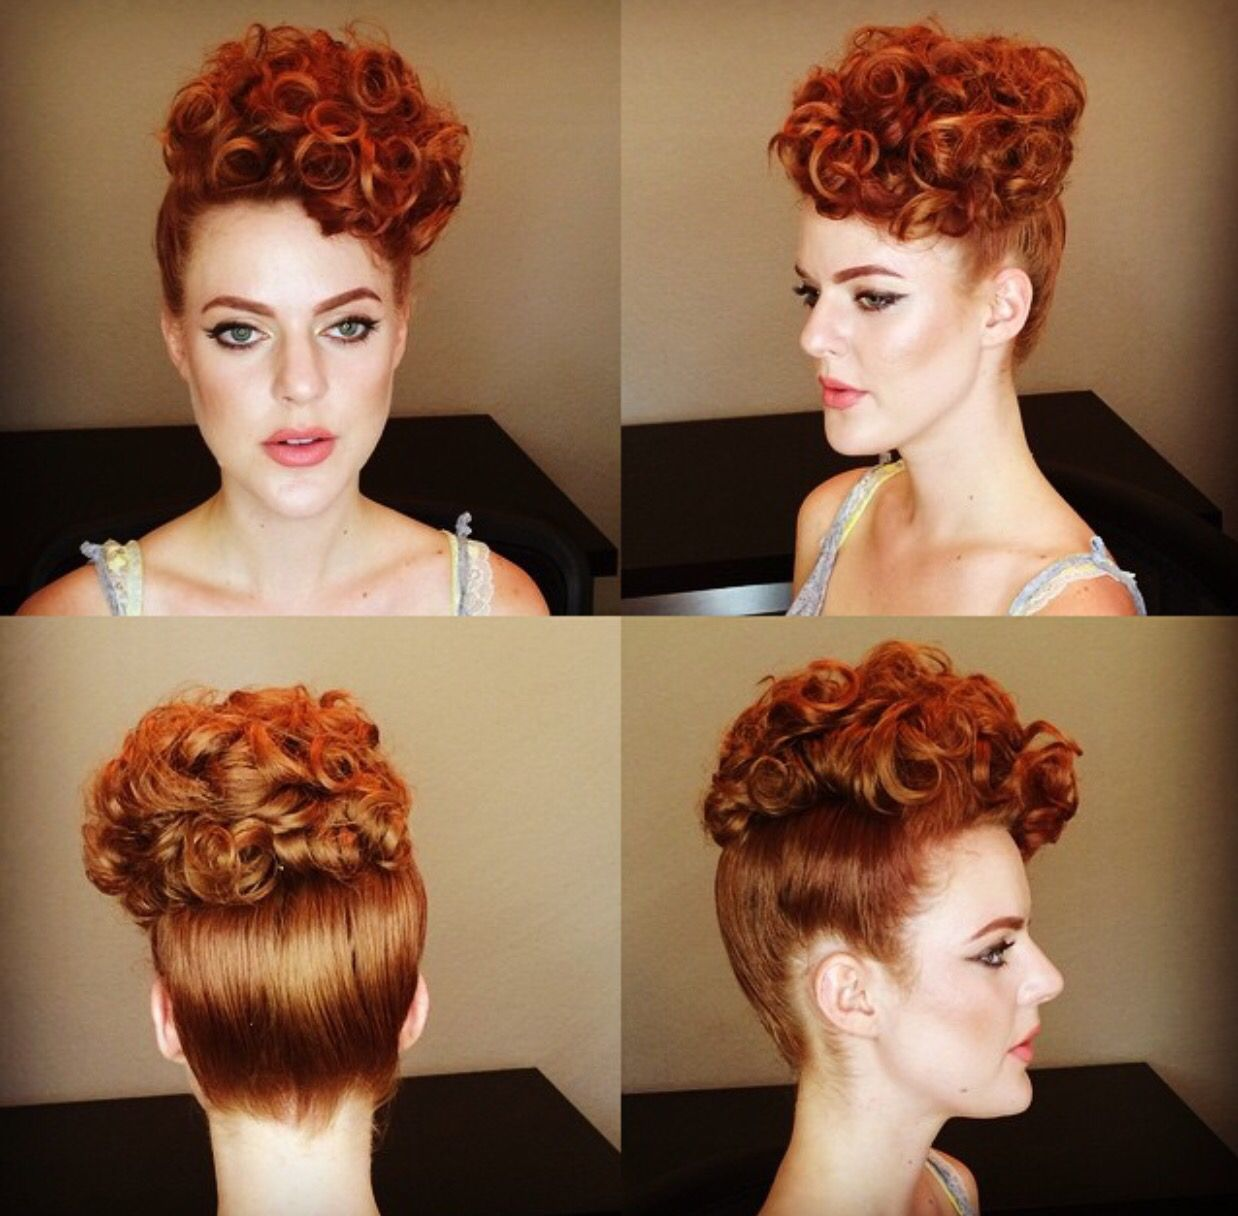 poodle hairstyle done by miss rockabilly ruby | hair